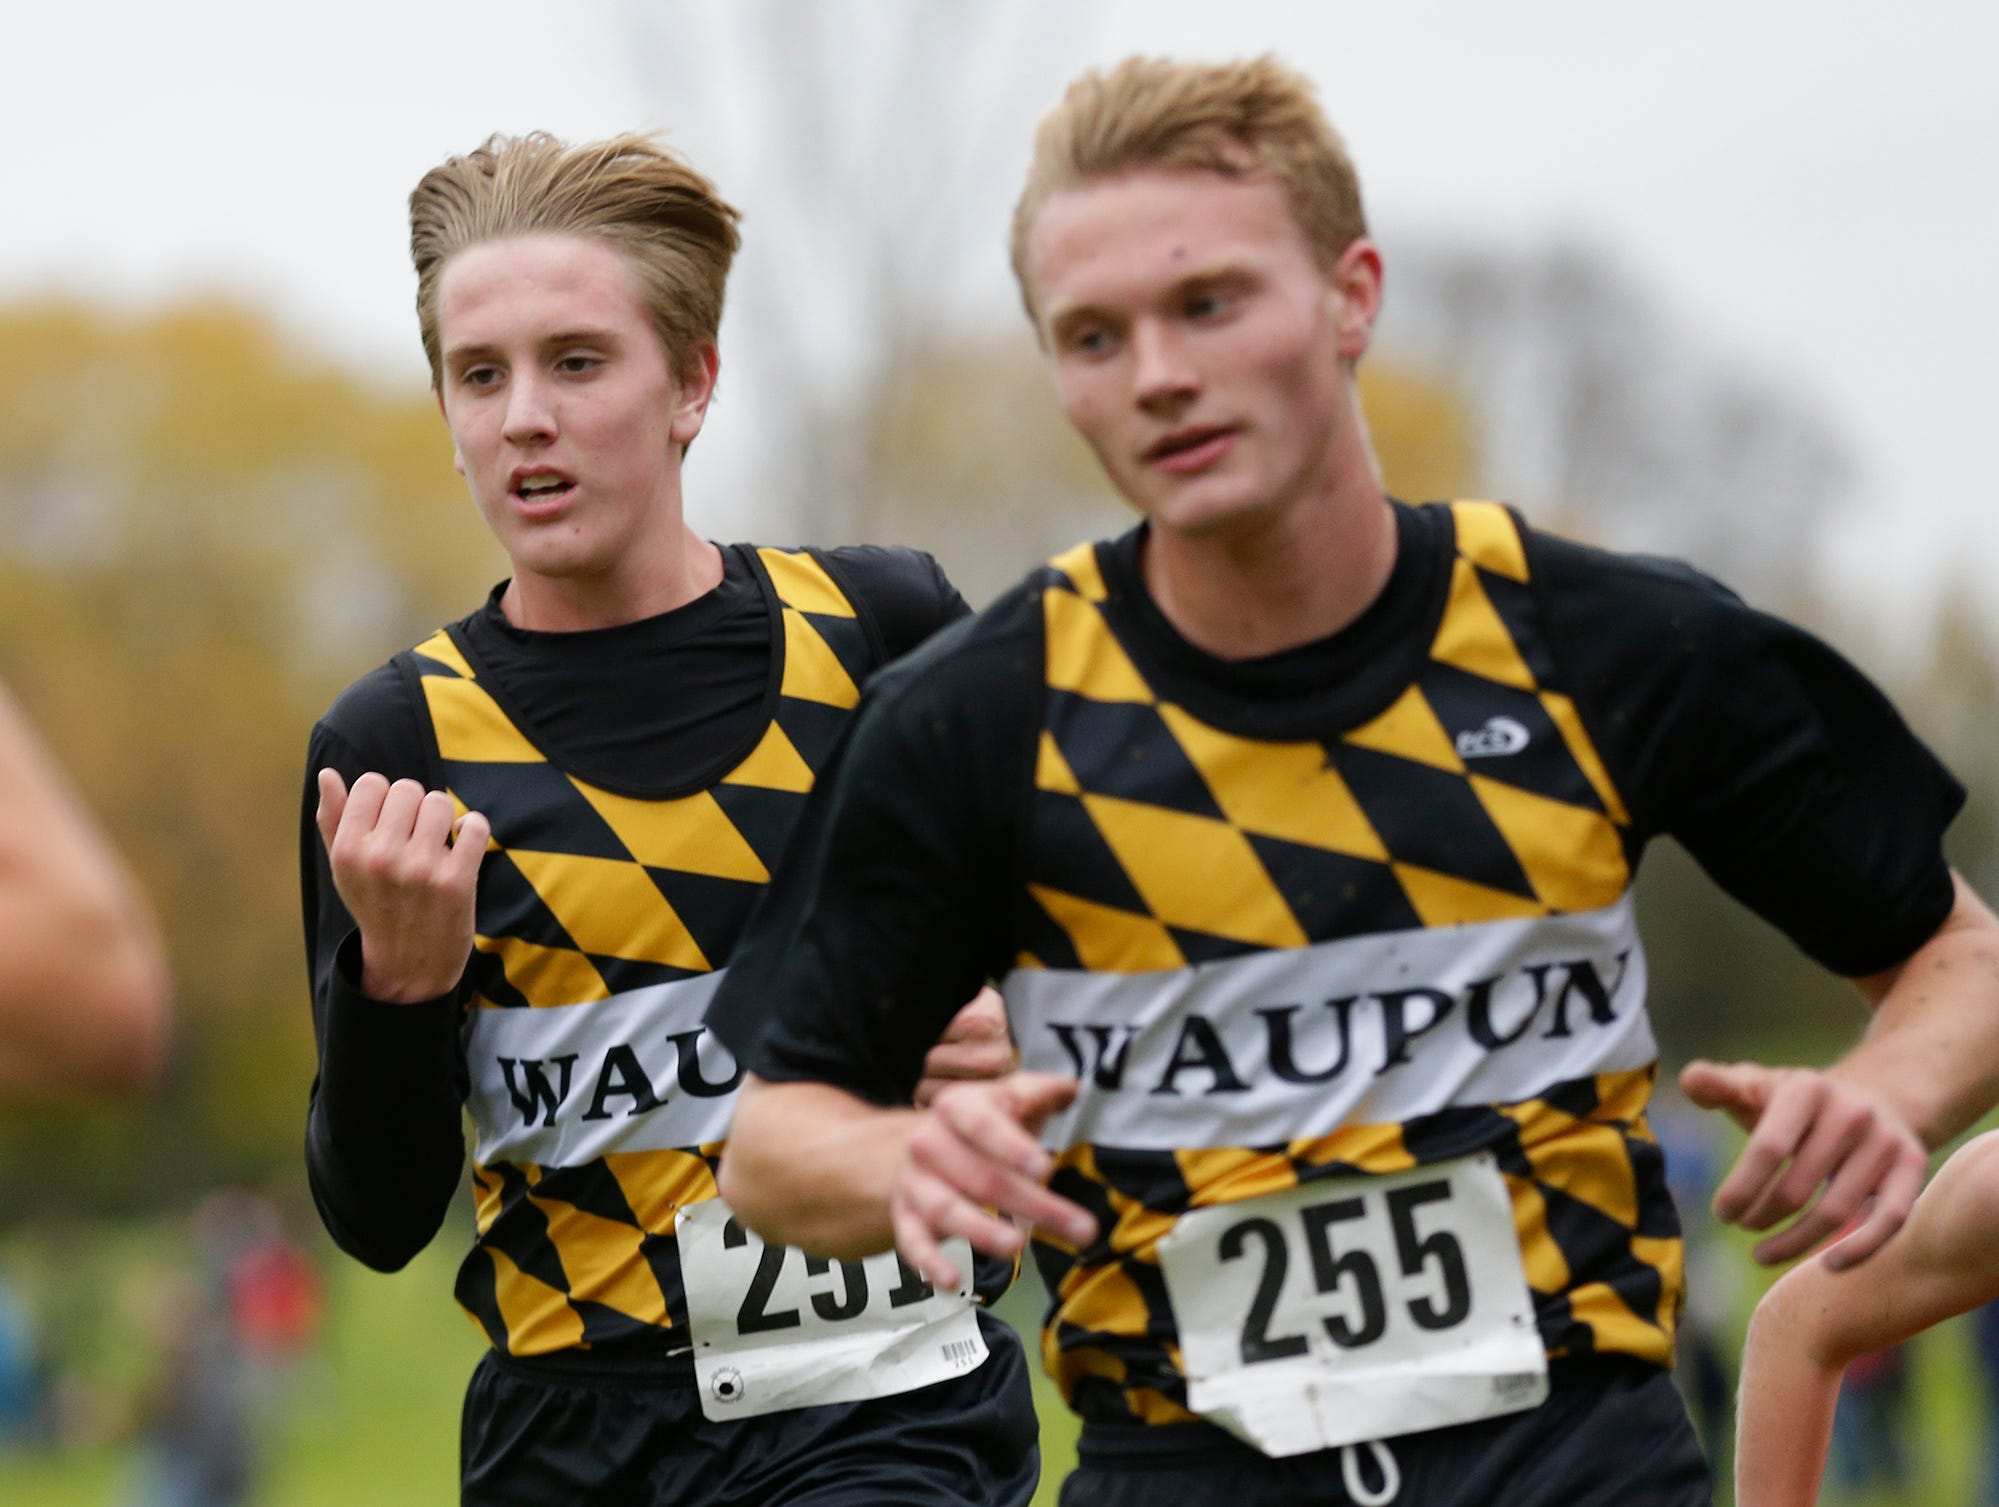 Waupun High School's Levi Kastein (251) and Kanon Smit (255) run in the WIAA Division two Mayville sectional cross country meet at the Mayville golf course Friday, October 19, 2018. Doug Raflik/USA TODAY NETWORK-Wisconsin